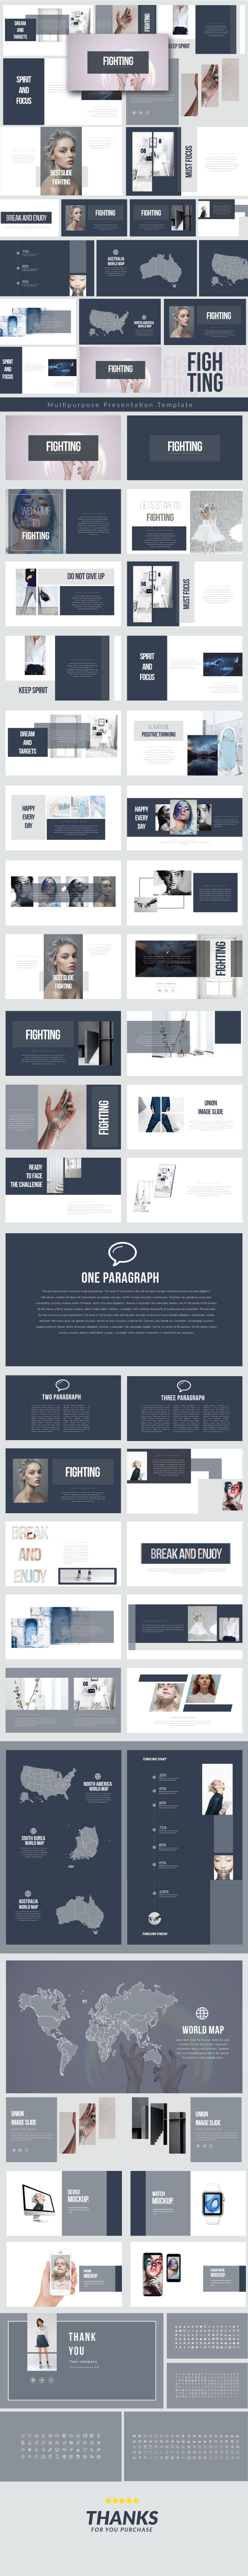 Fighting - Multipurpose Presentation Templates - PowerPoint Templates Presentation Templates